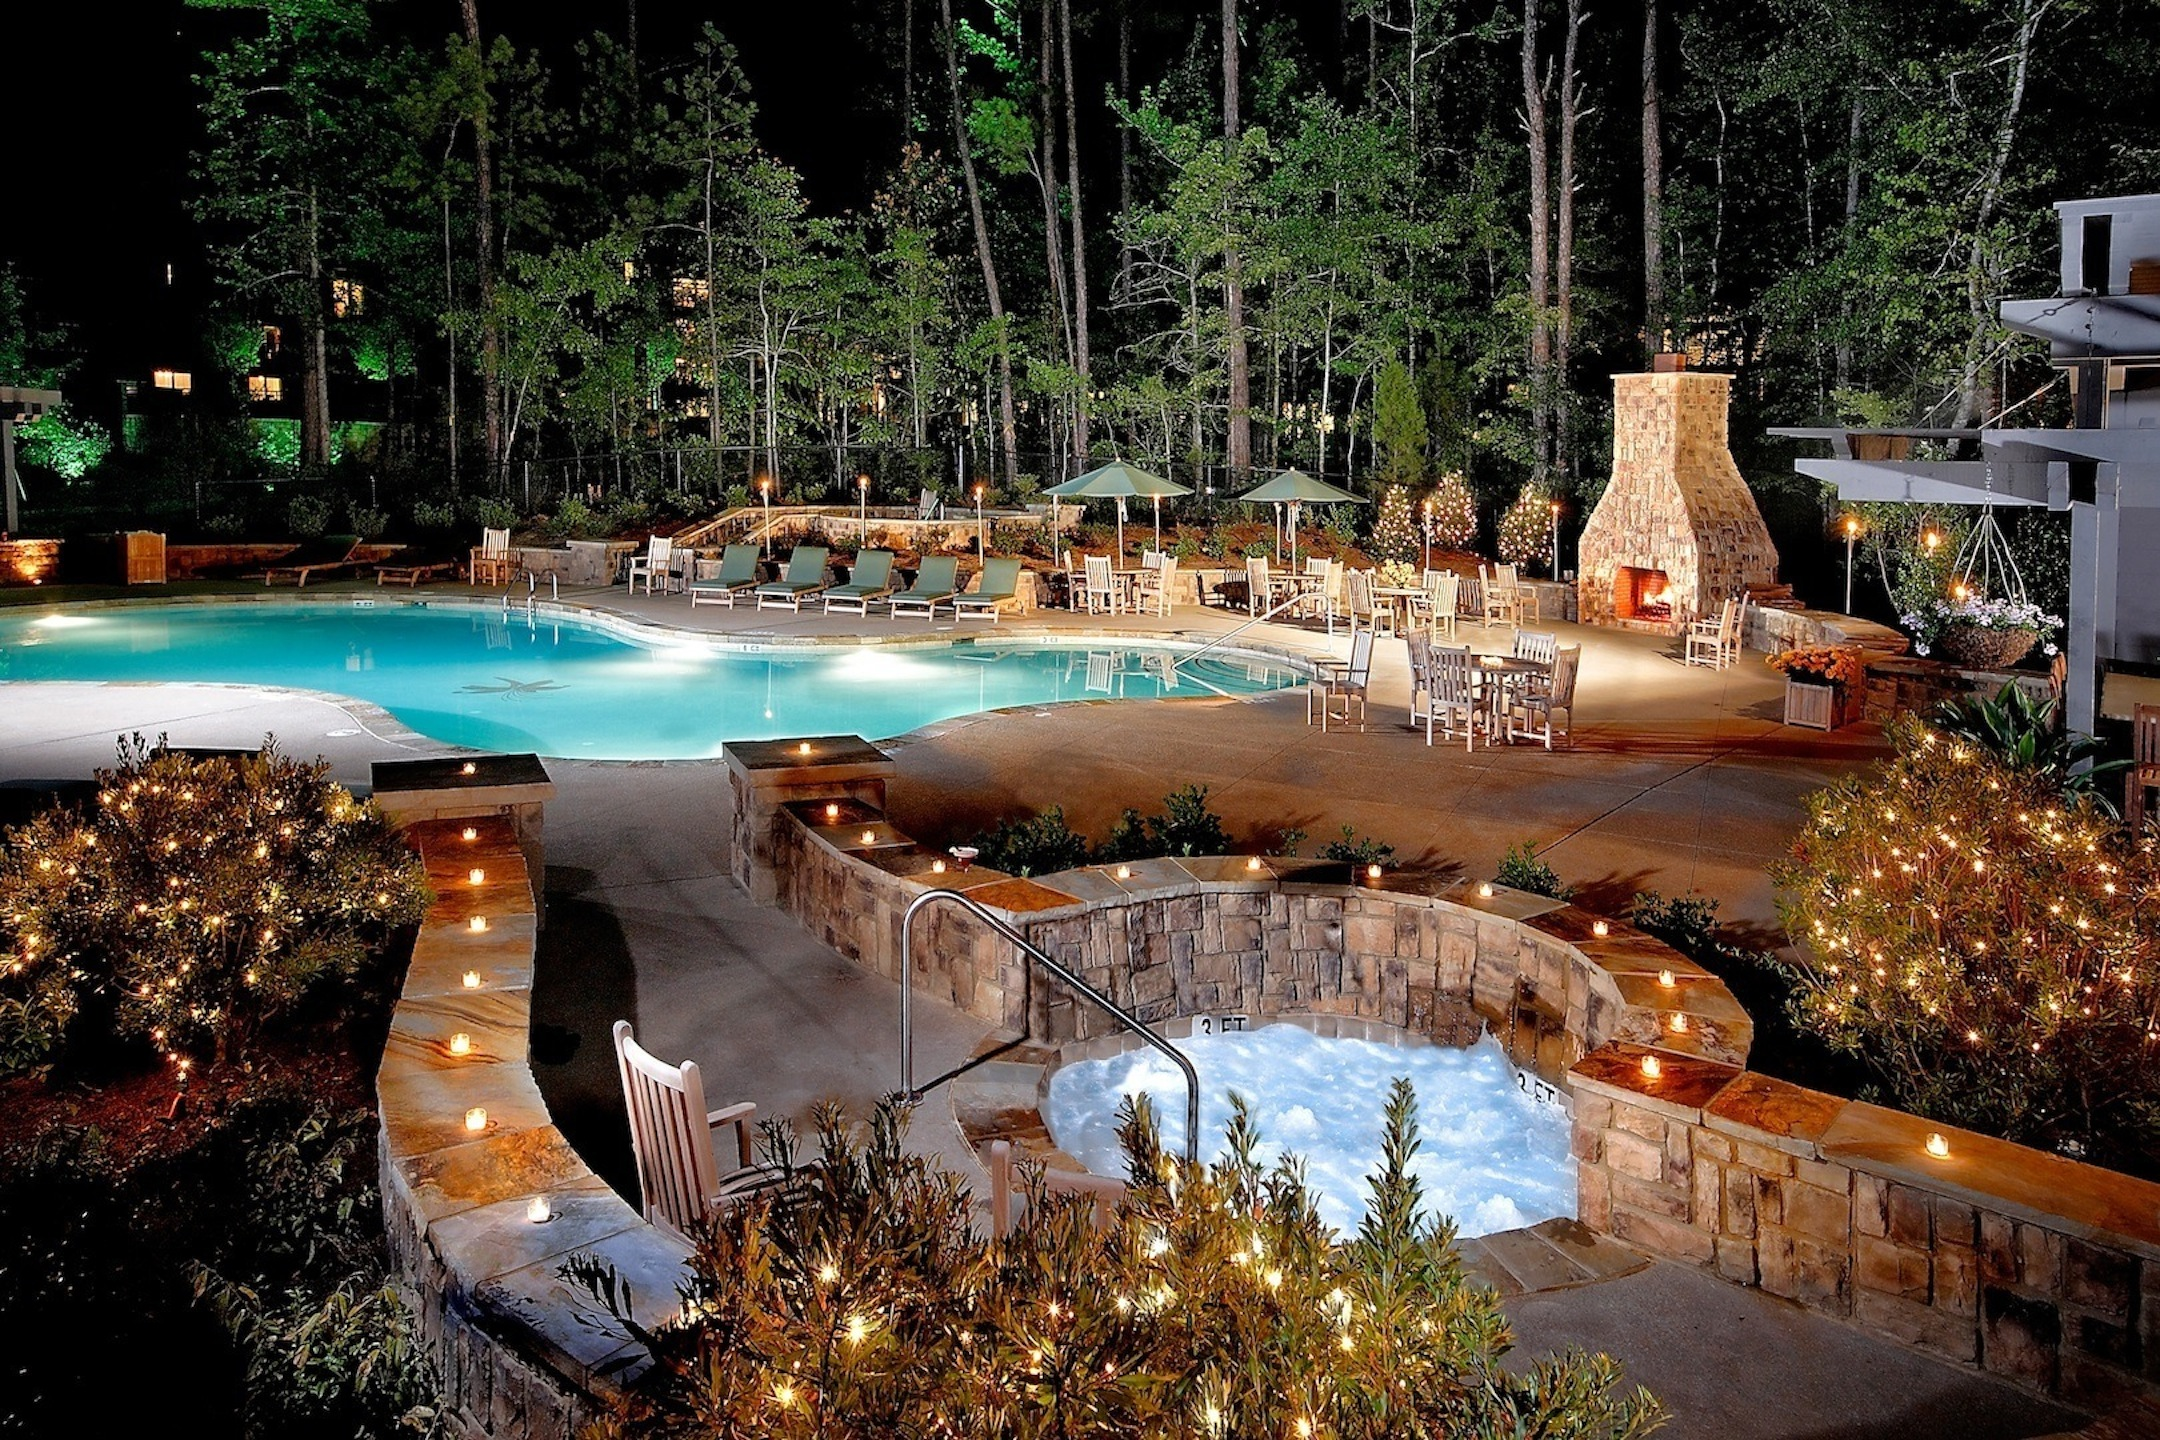 Weekend Getaway The Lodge and Spa at Callaway Gardens